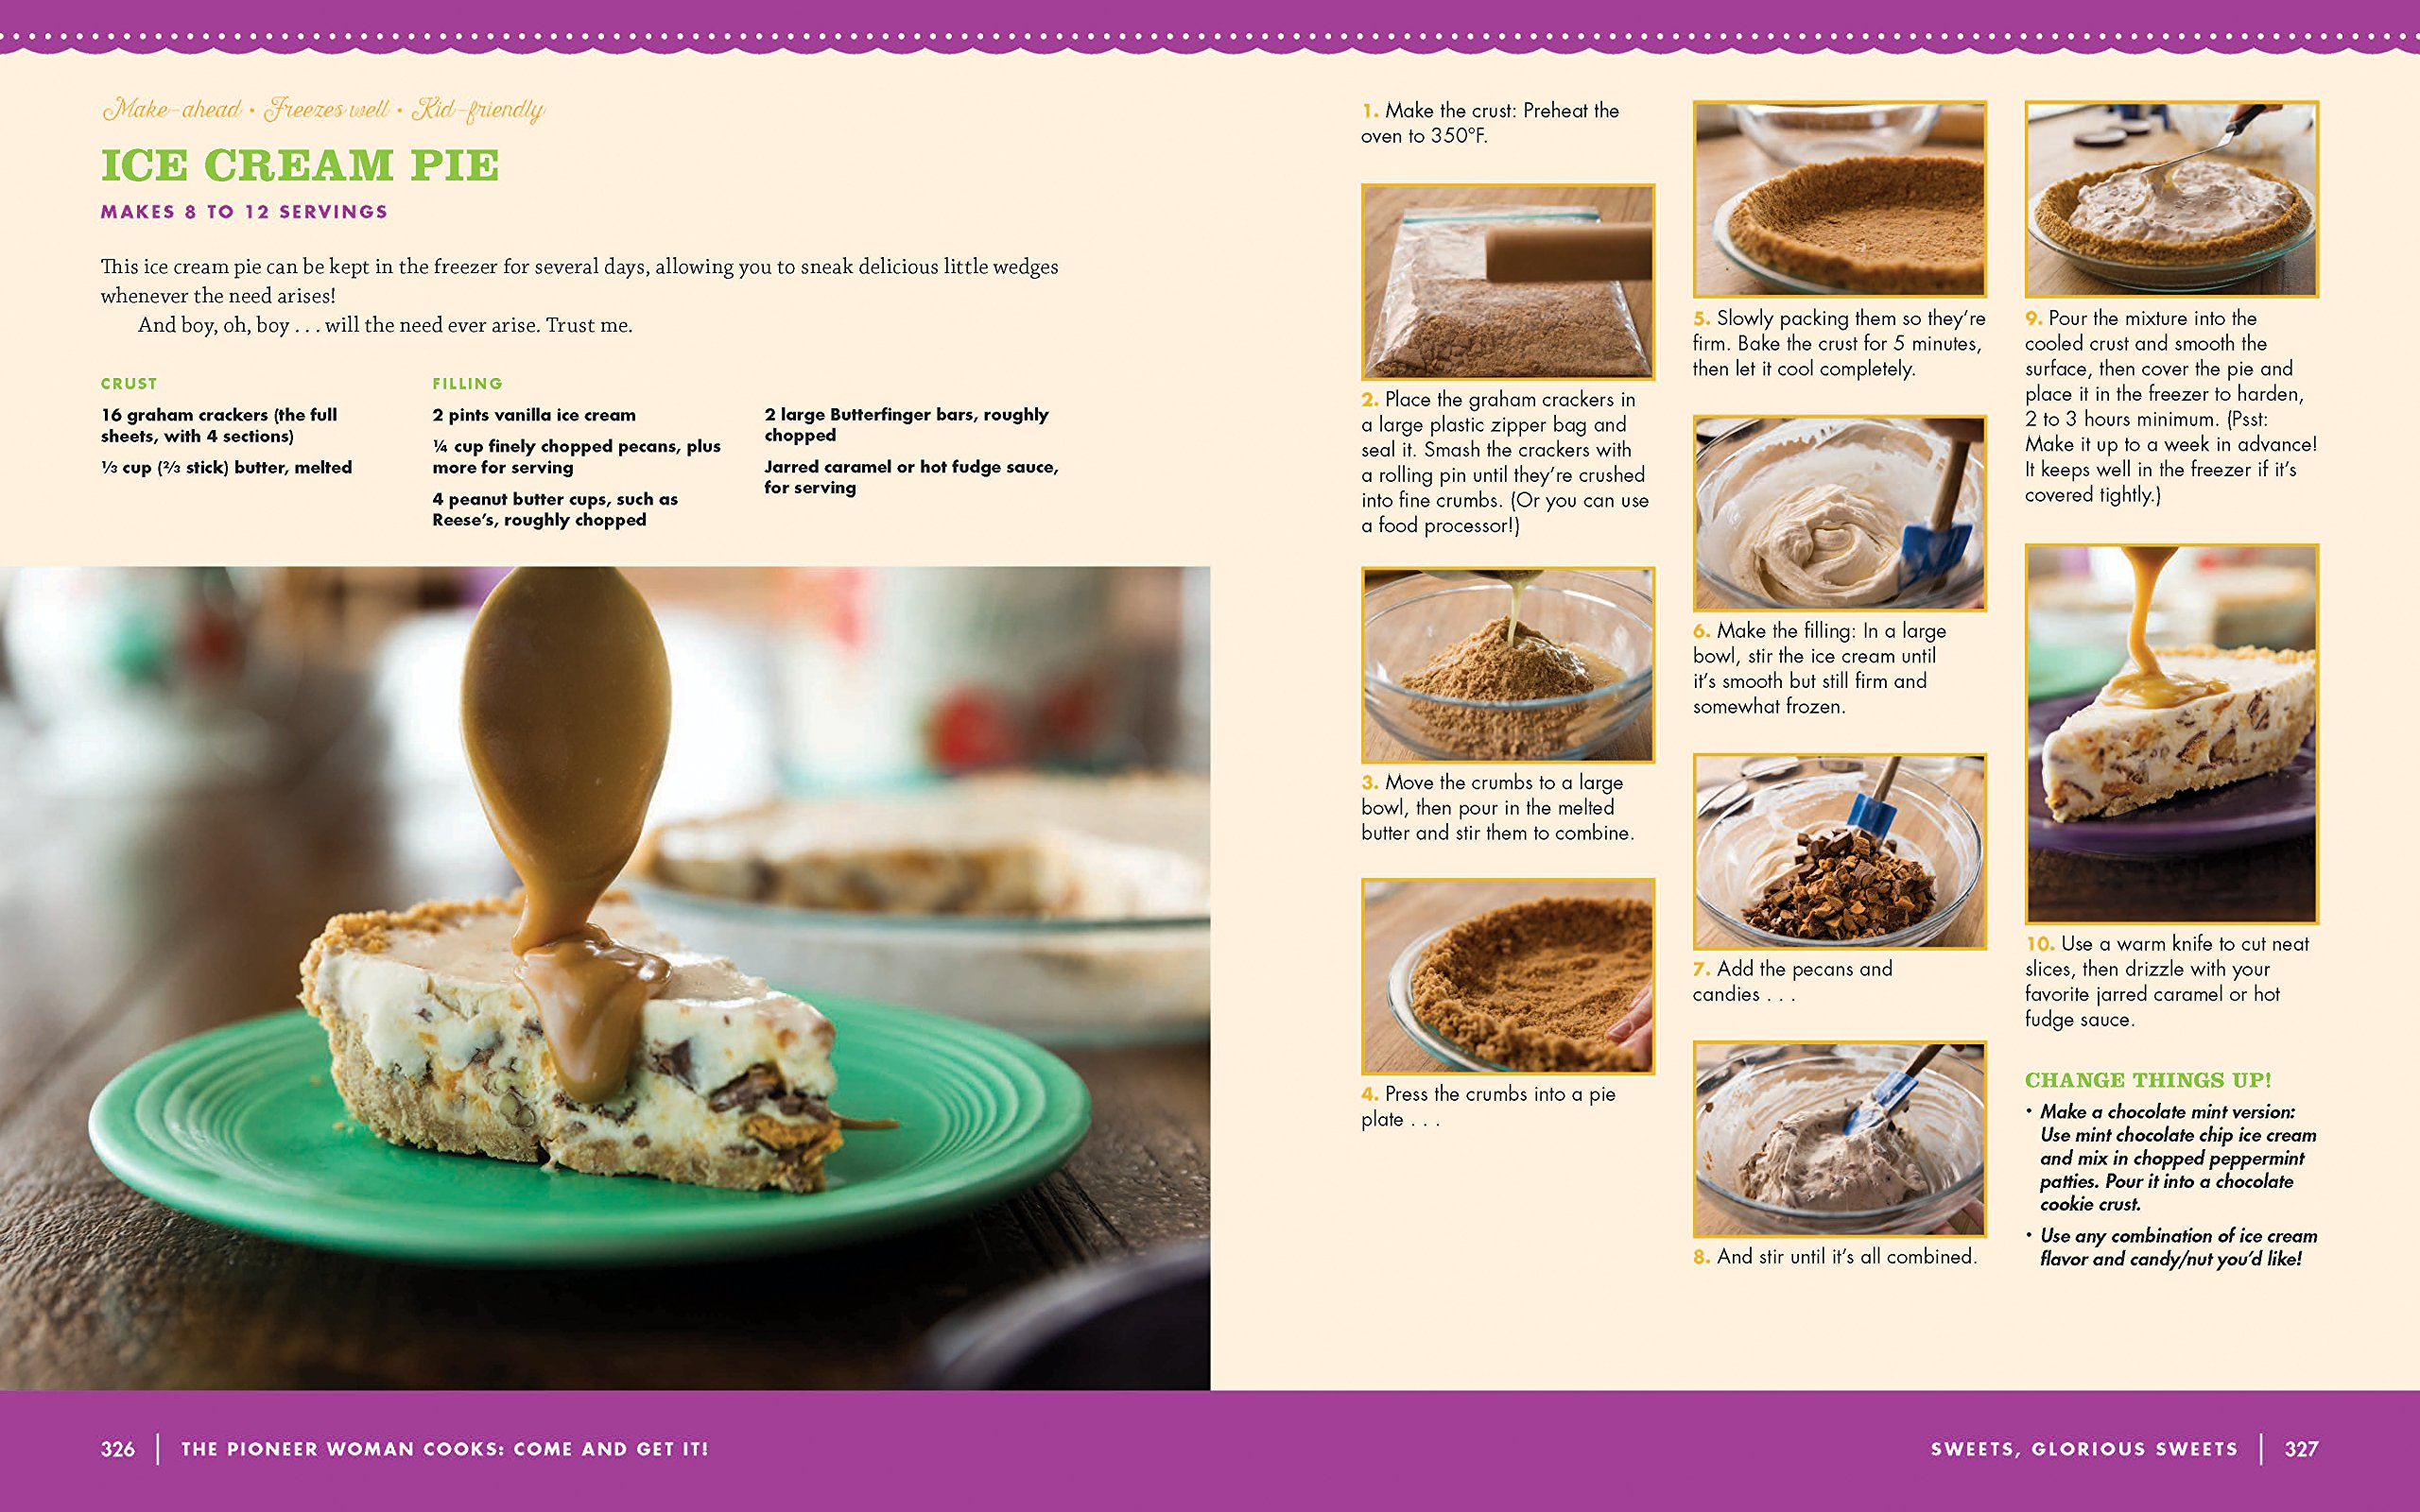 The Pioneer Woman Cooks: Come and Get It!: Simple, Scrumptious Recipes for  Crazy Busy Lives: Ree Drummond: 9780062225269: Amazon.com: Books